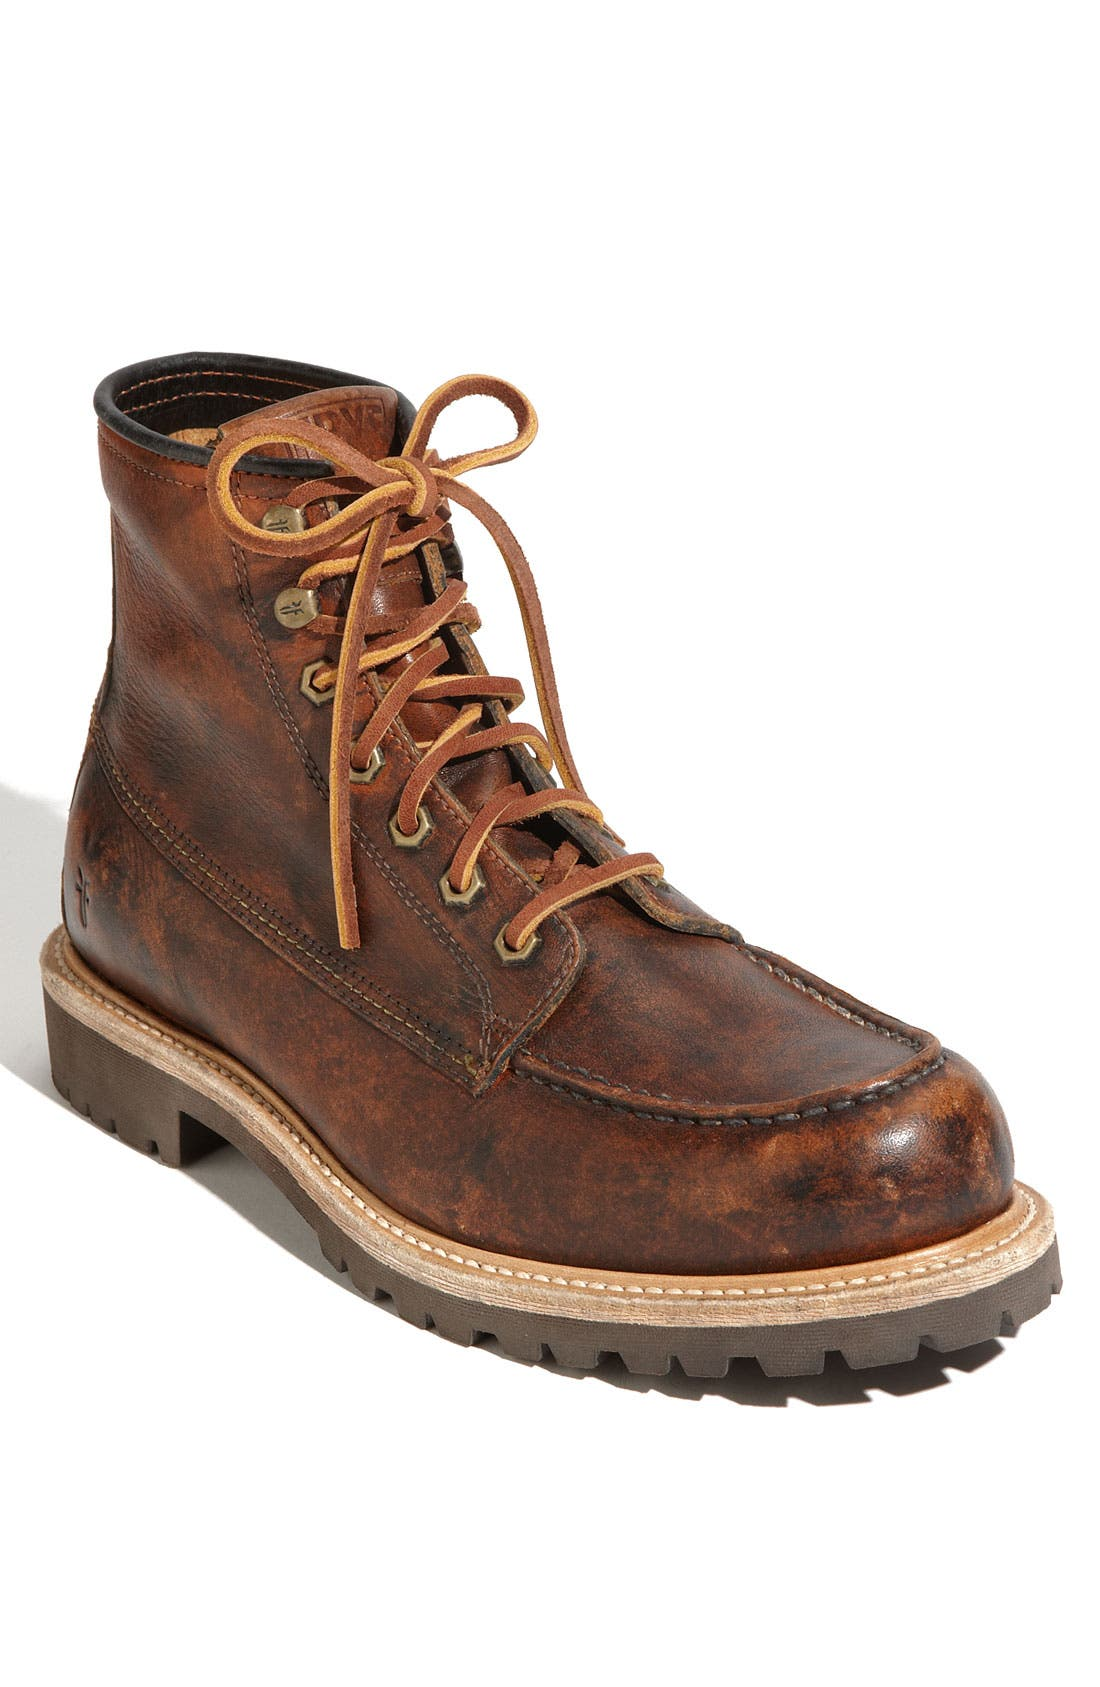 Alternate Image 1 Selected - Frye 'Dakota' Boot